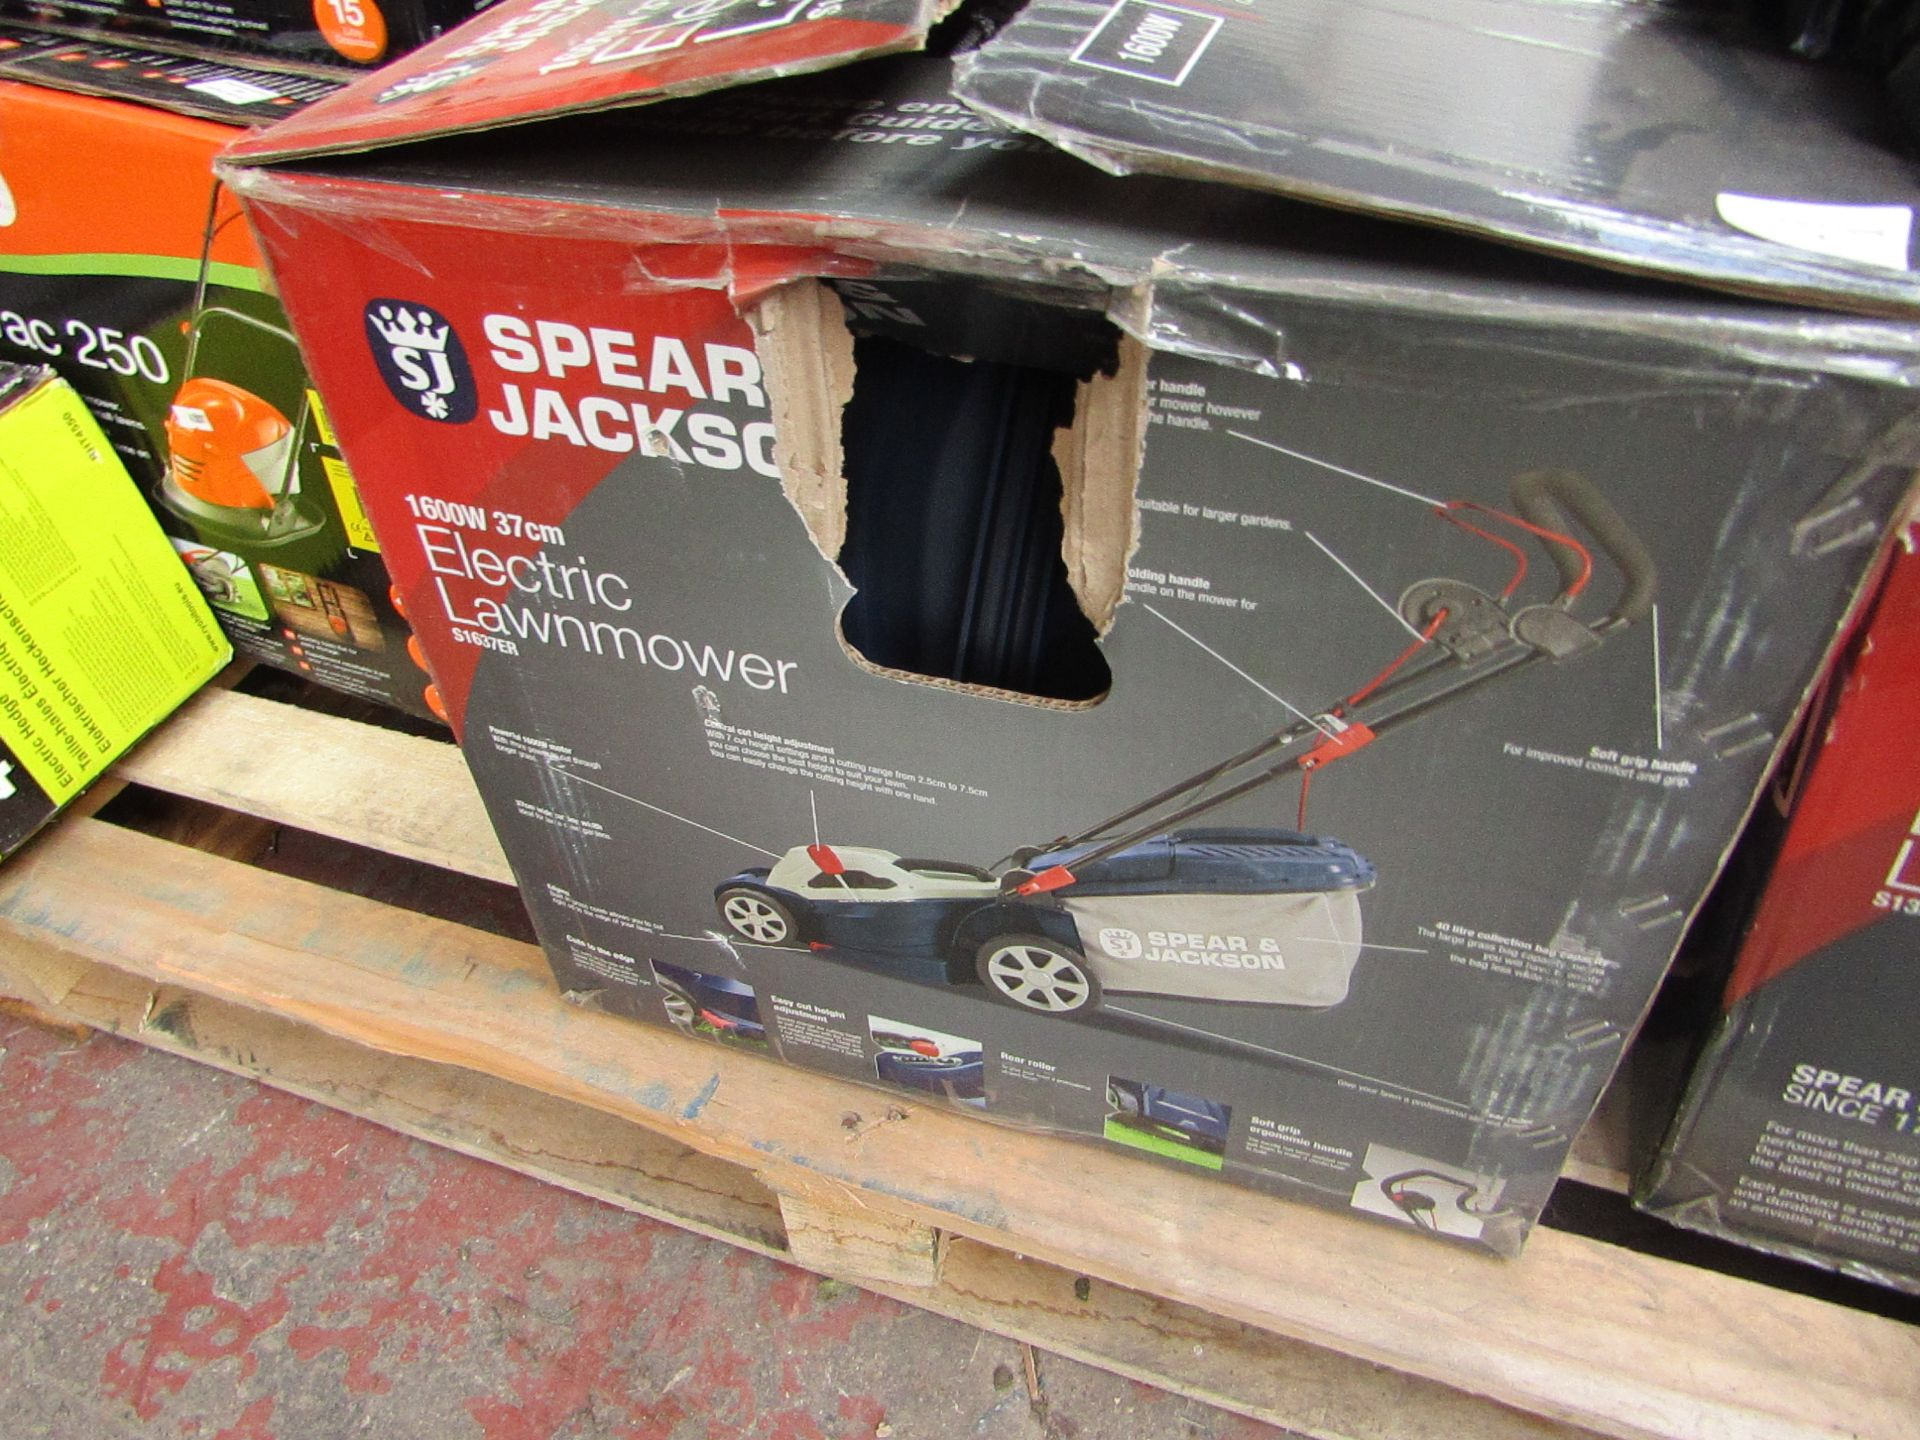 Lotto 4 - Spear and Jackson 1600w Electric lawn mower, tested working and boxed but the back roller is broke